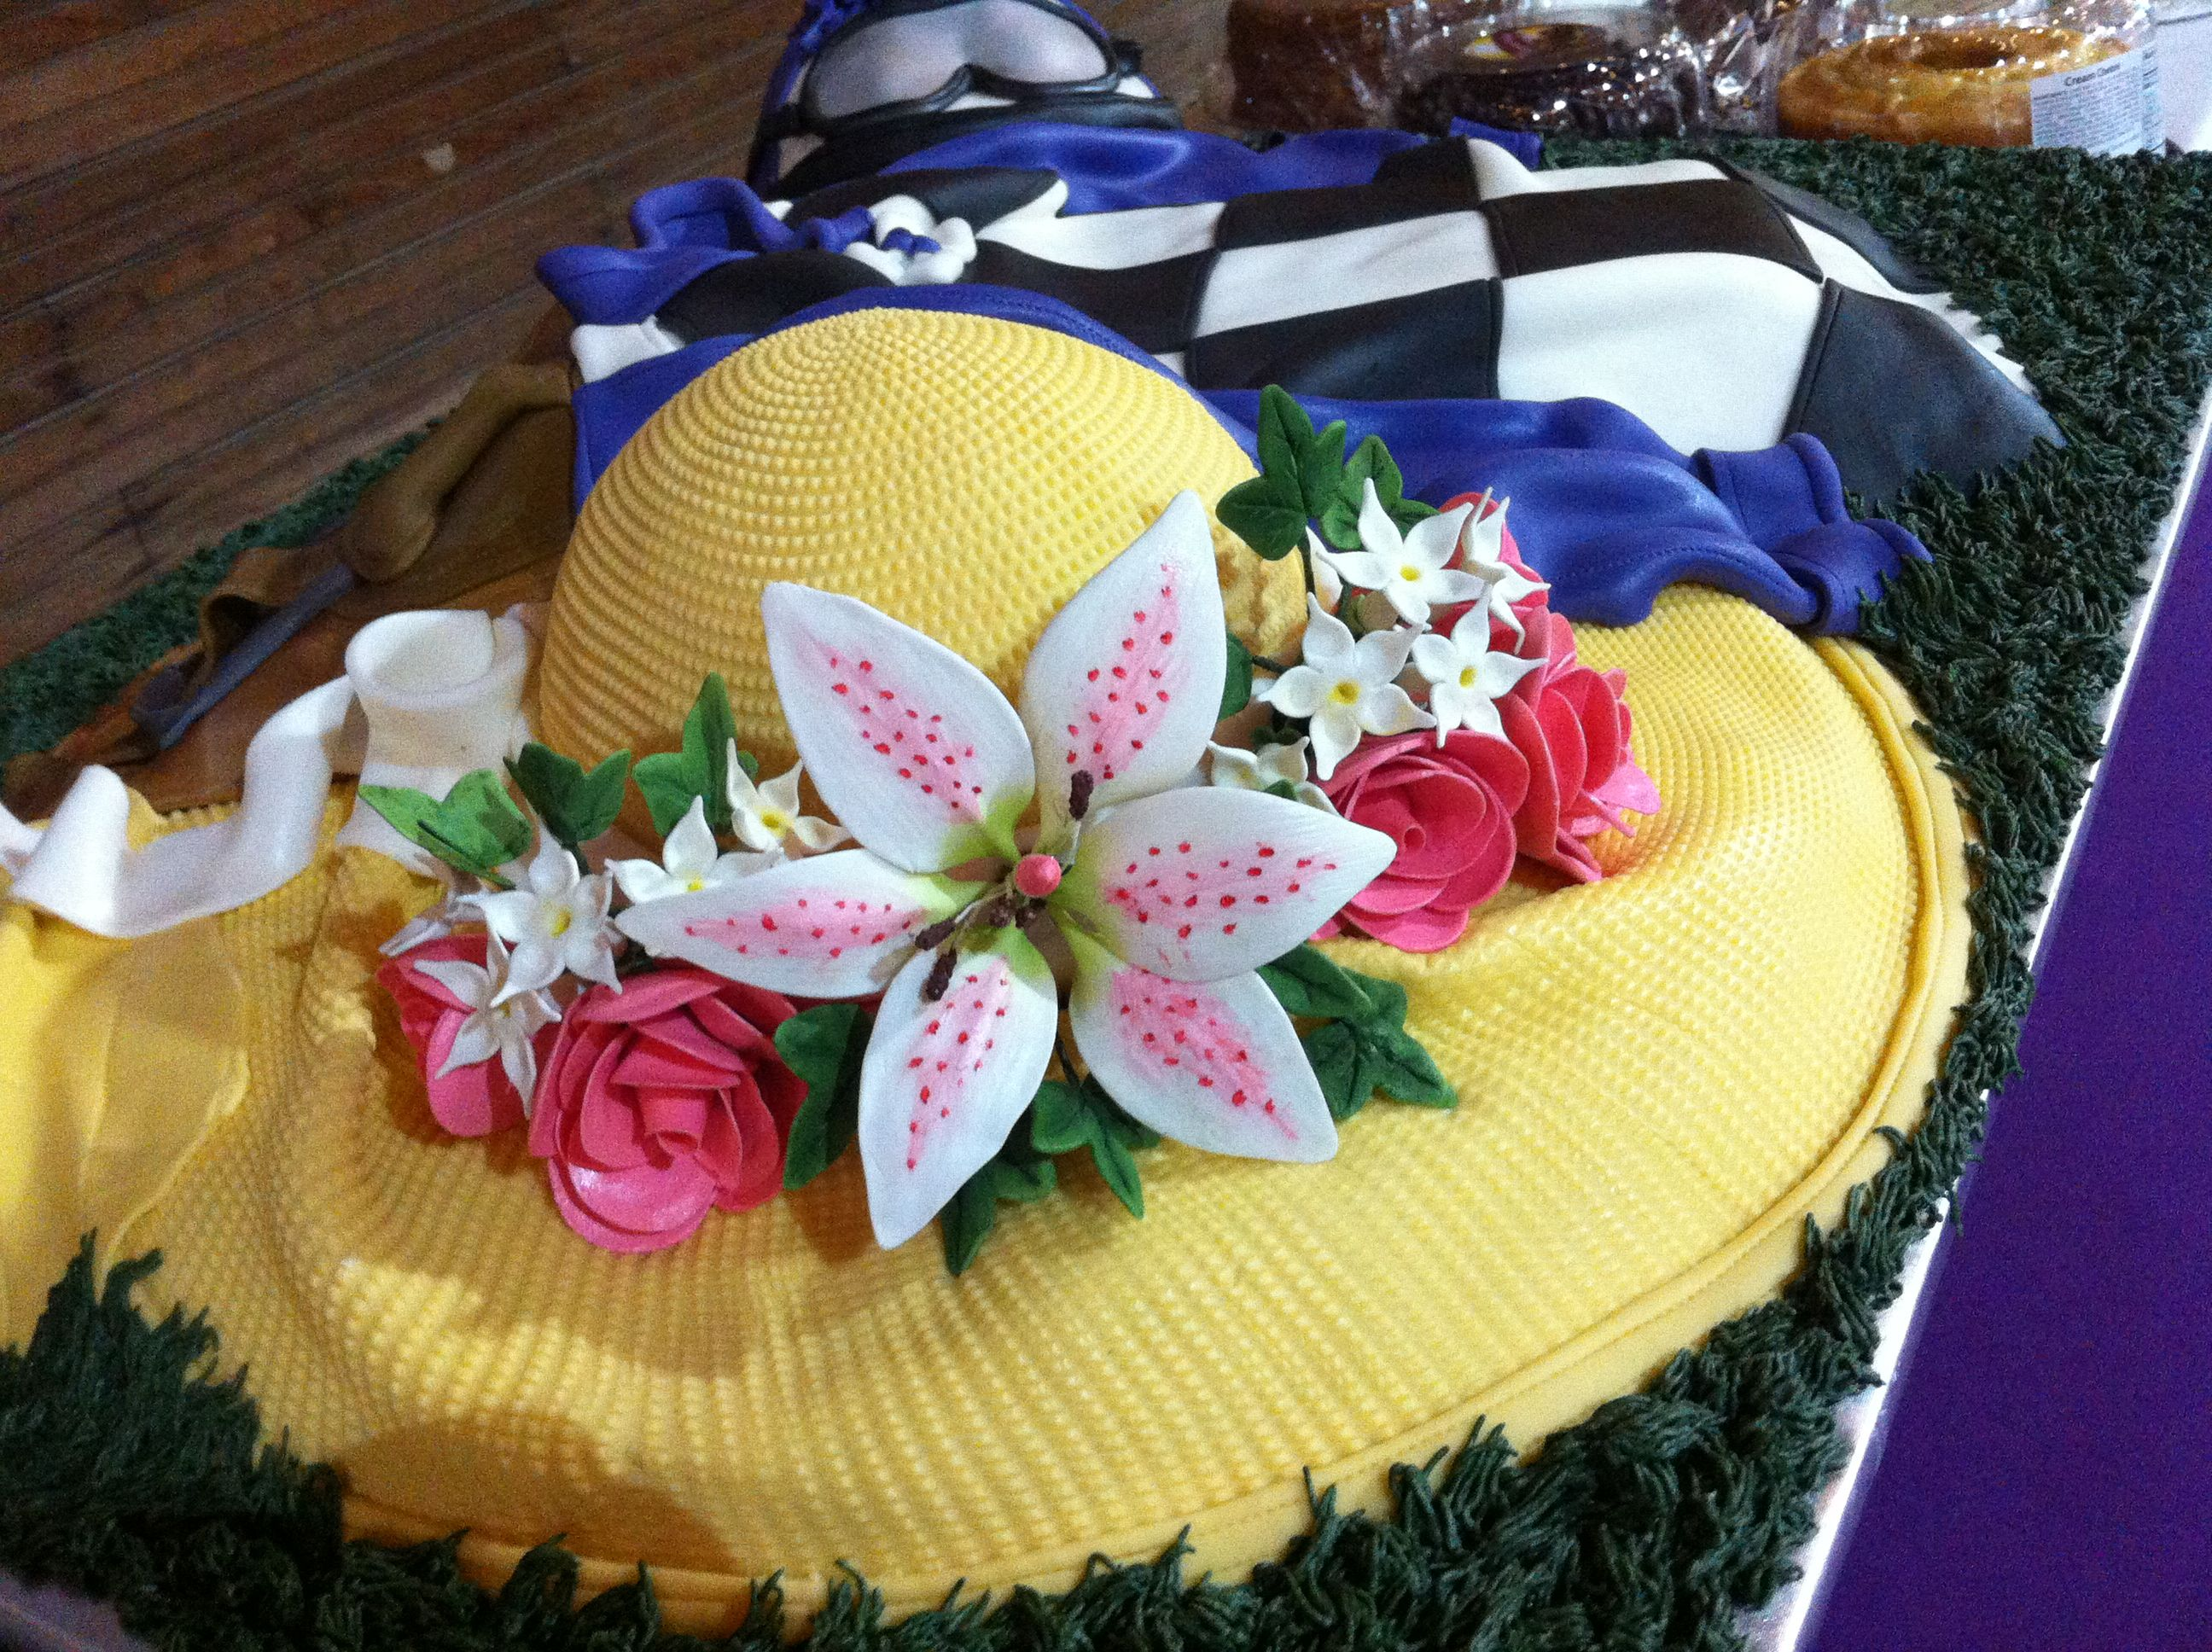 Kentucky Derby Themed Cake With Images Kentucky Derby Party